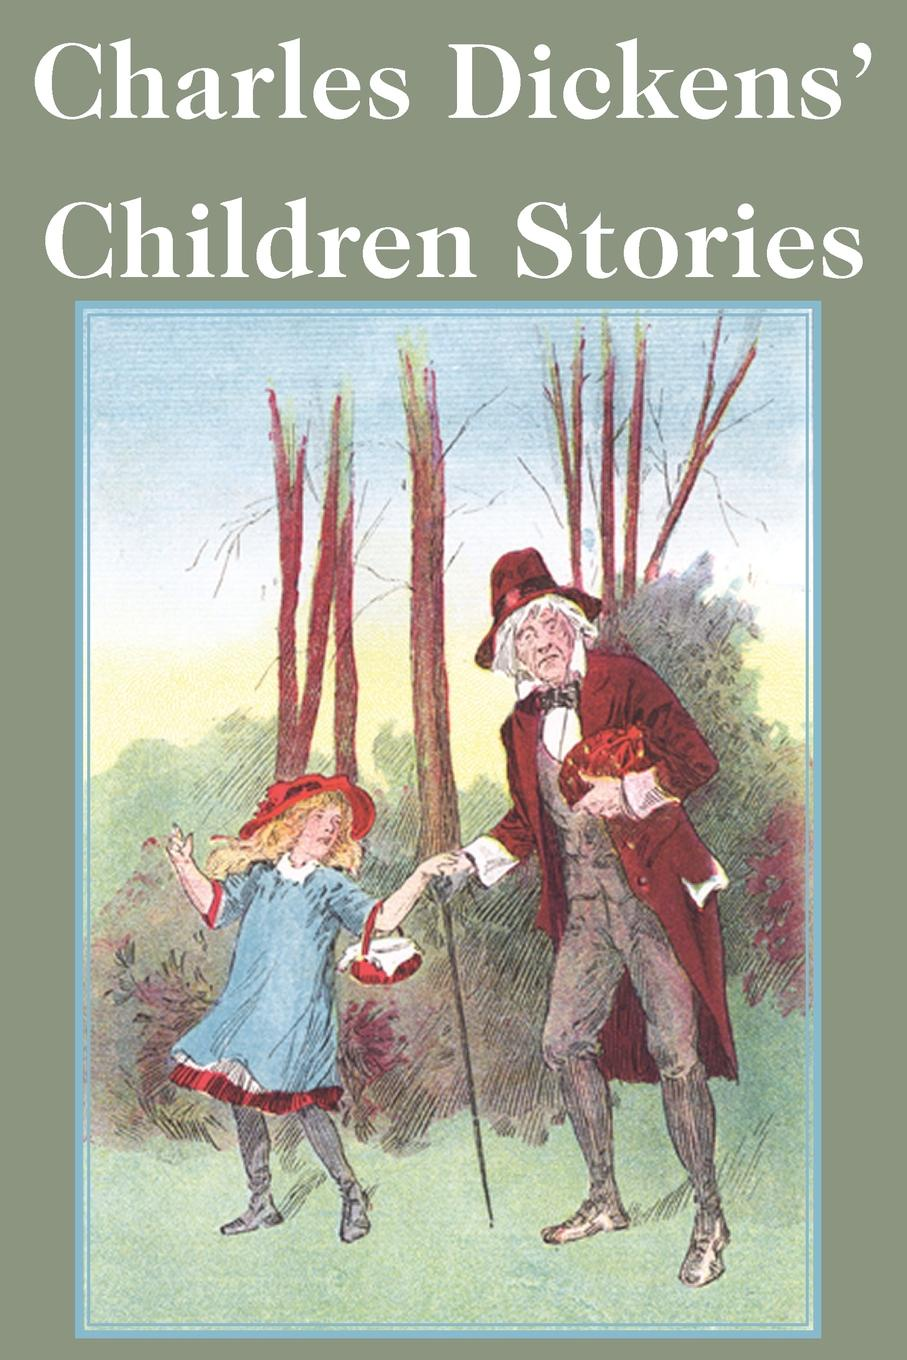 Чарльз Диккенс Charles Dickens' Children Stories charles dickens charles dickens s works charles dickens ed 18 vols of a 21 vol set wanting a child s history of england christmas stories the mystery of edwin drood volume 17 german edition